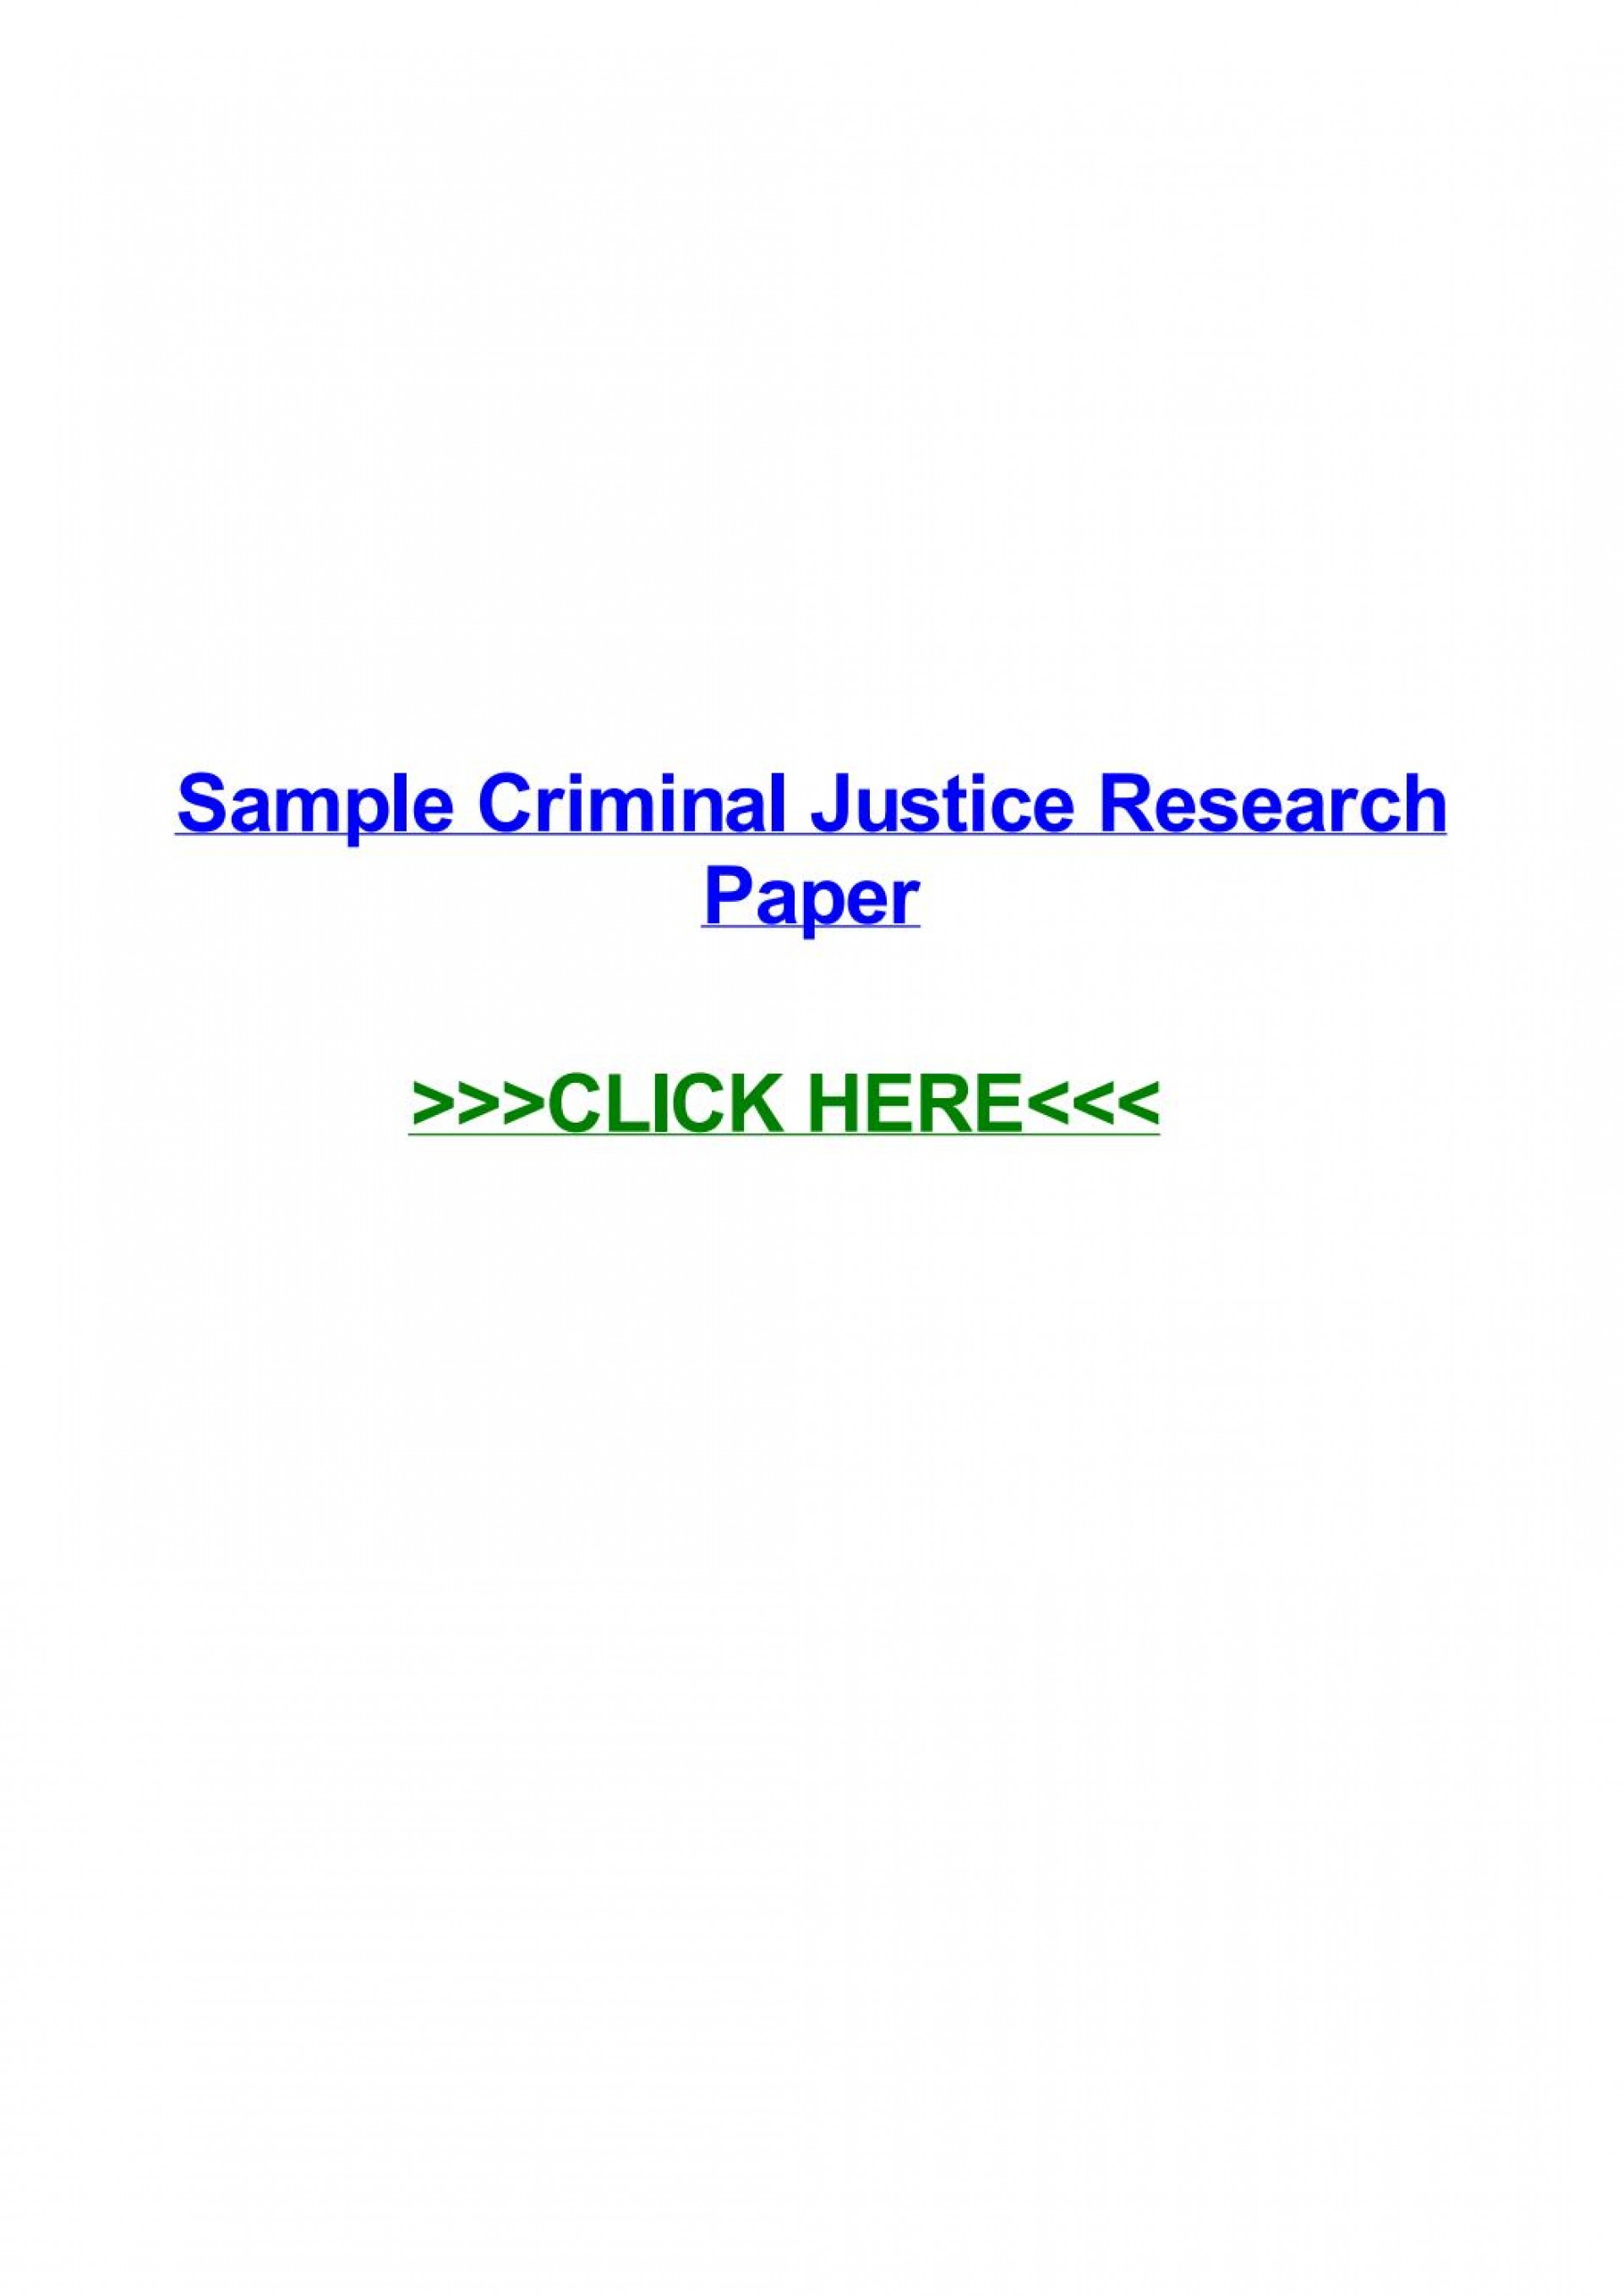 009 Criminal Justice Researchs Free Page 1 Unforgettable Research Papers 1920